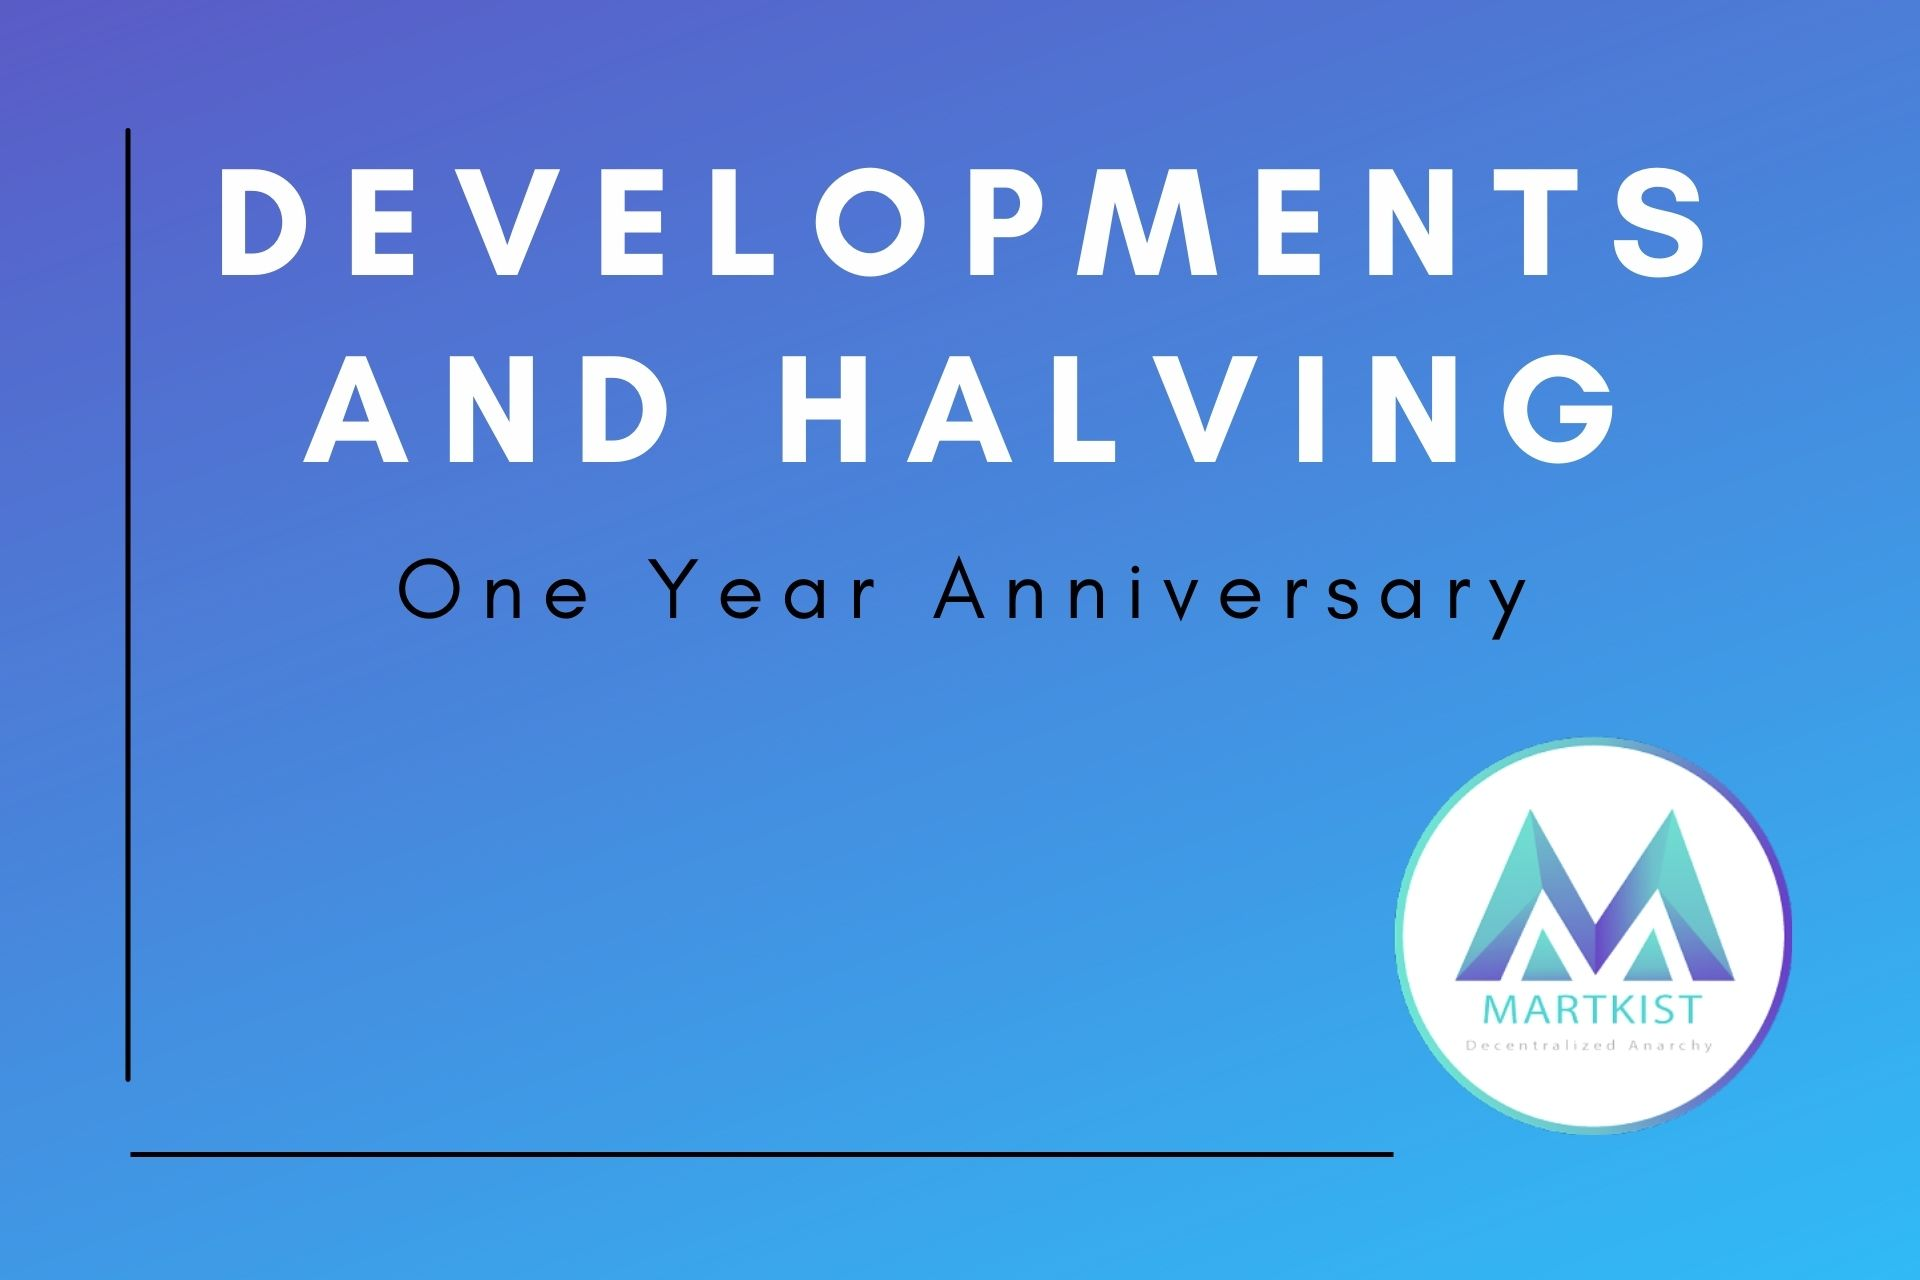 Martkist One Year Anniversary | Going Through the Developments and Halving